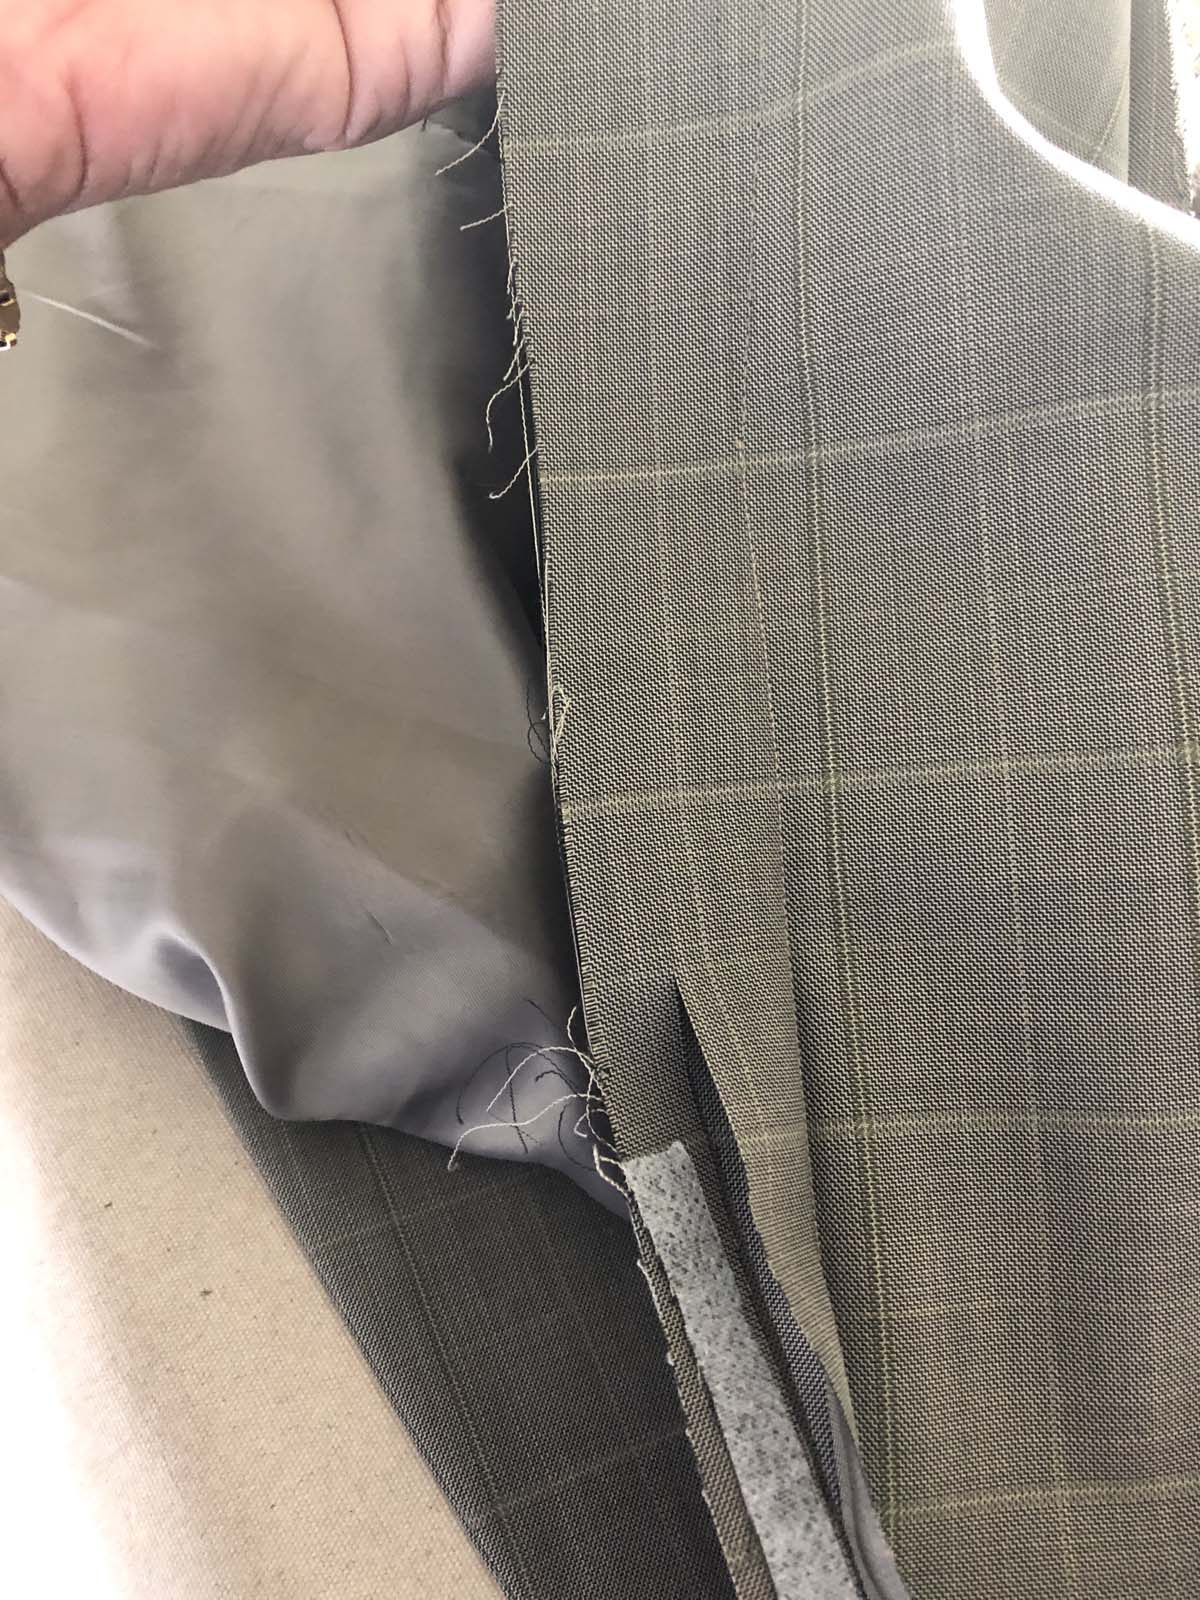 Removing excess seam allowances from the men's suit jacket